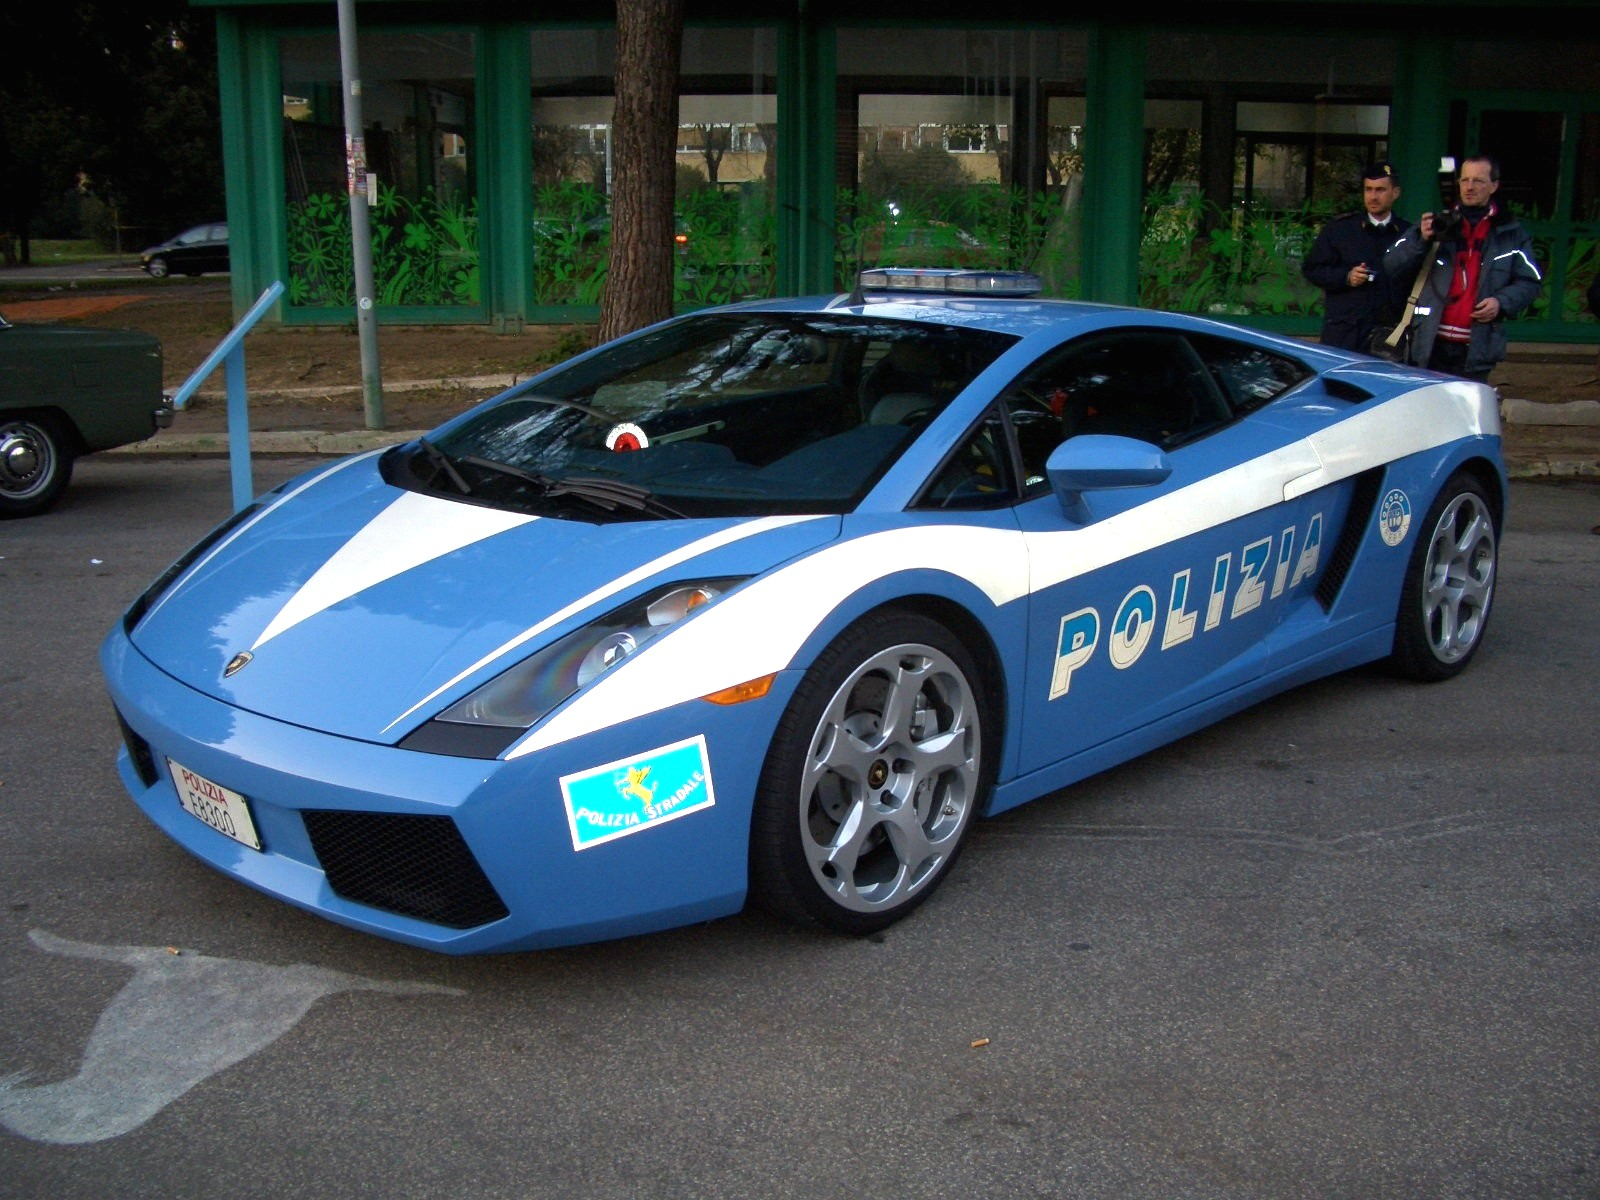 Photo of a Lamborghini owned by the Italian police